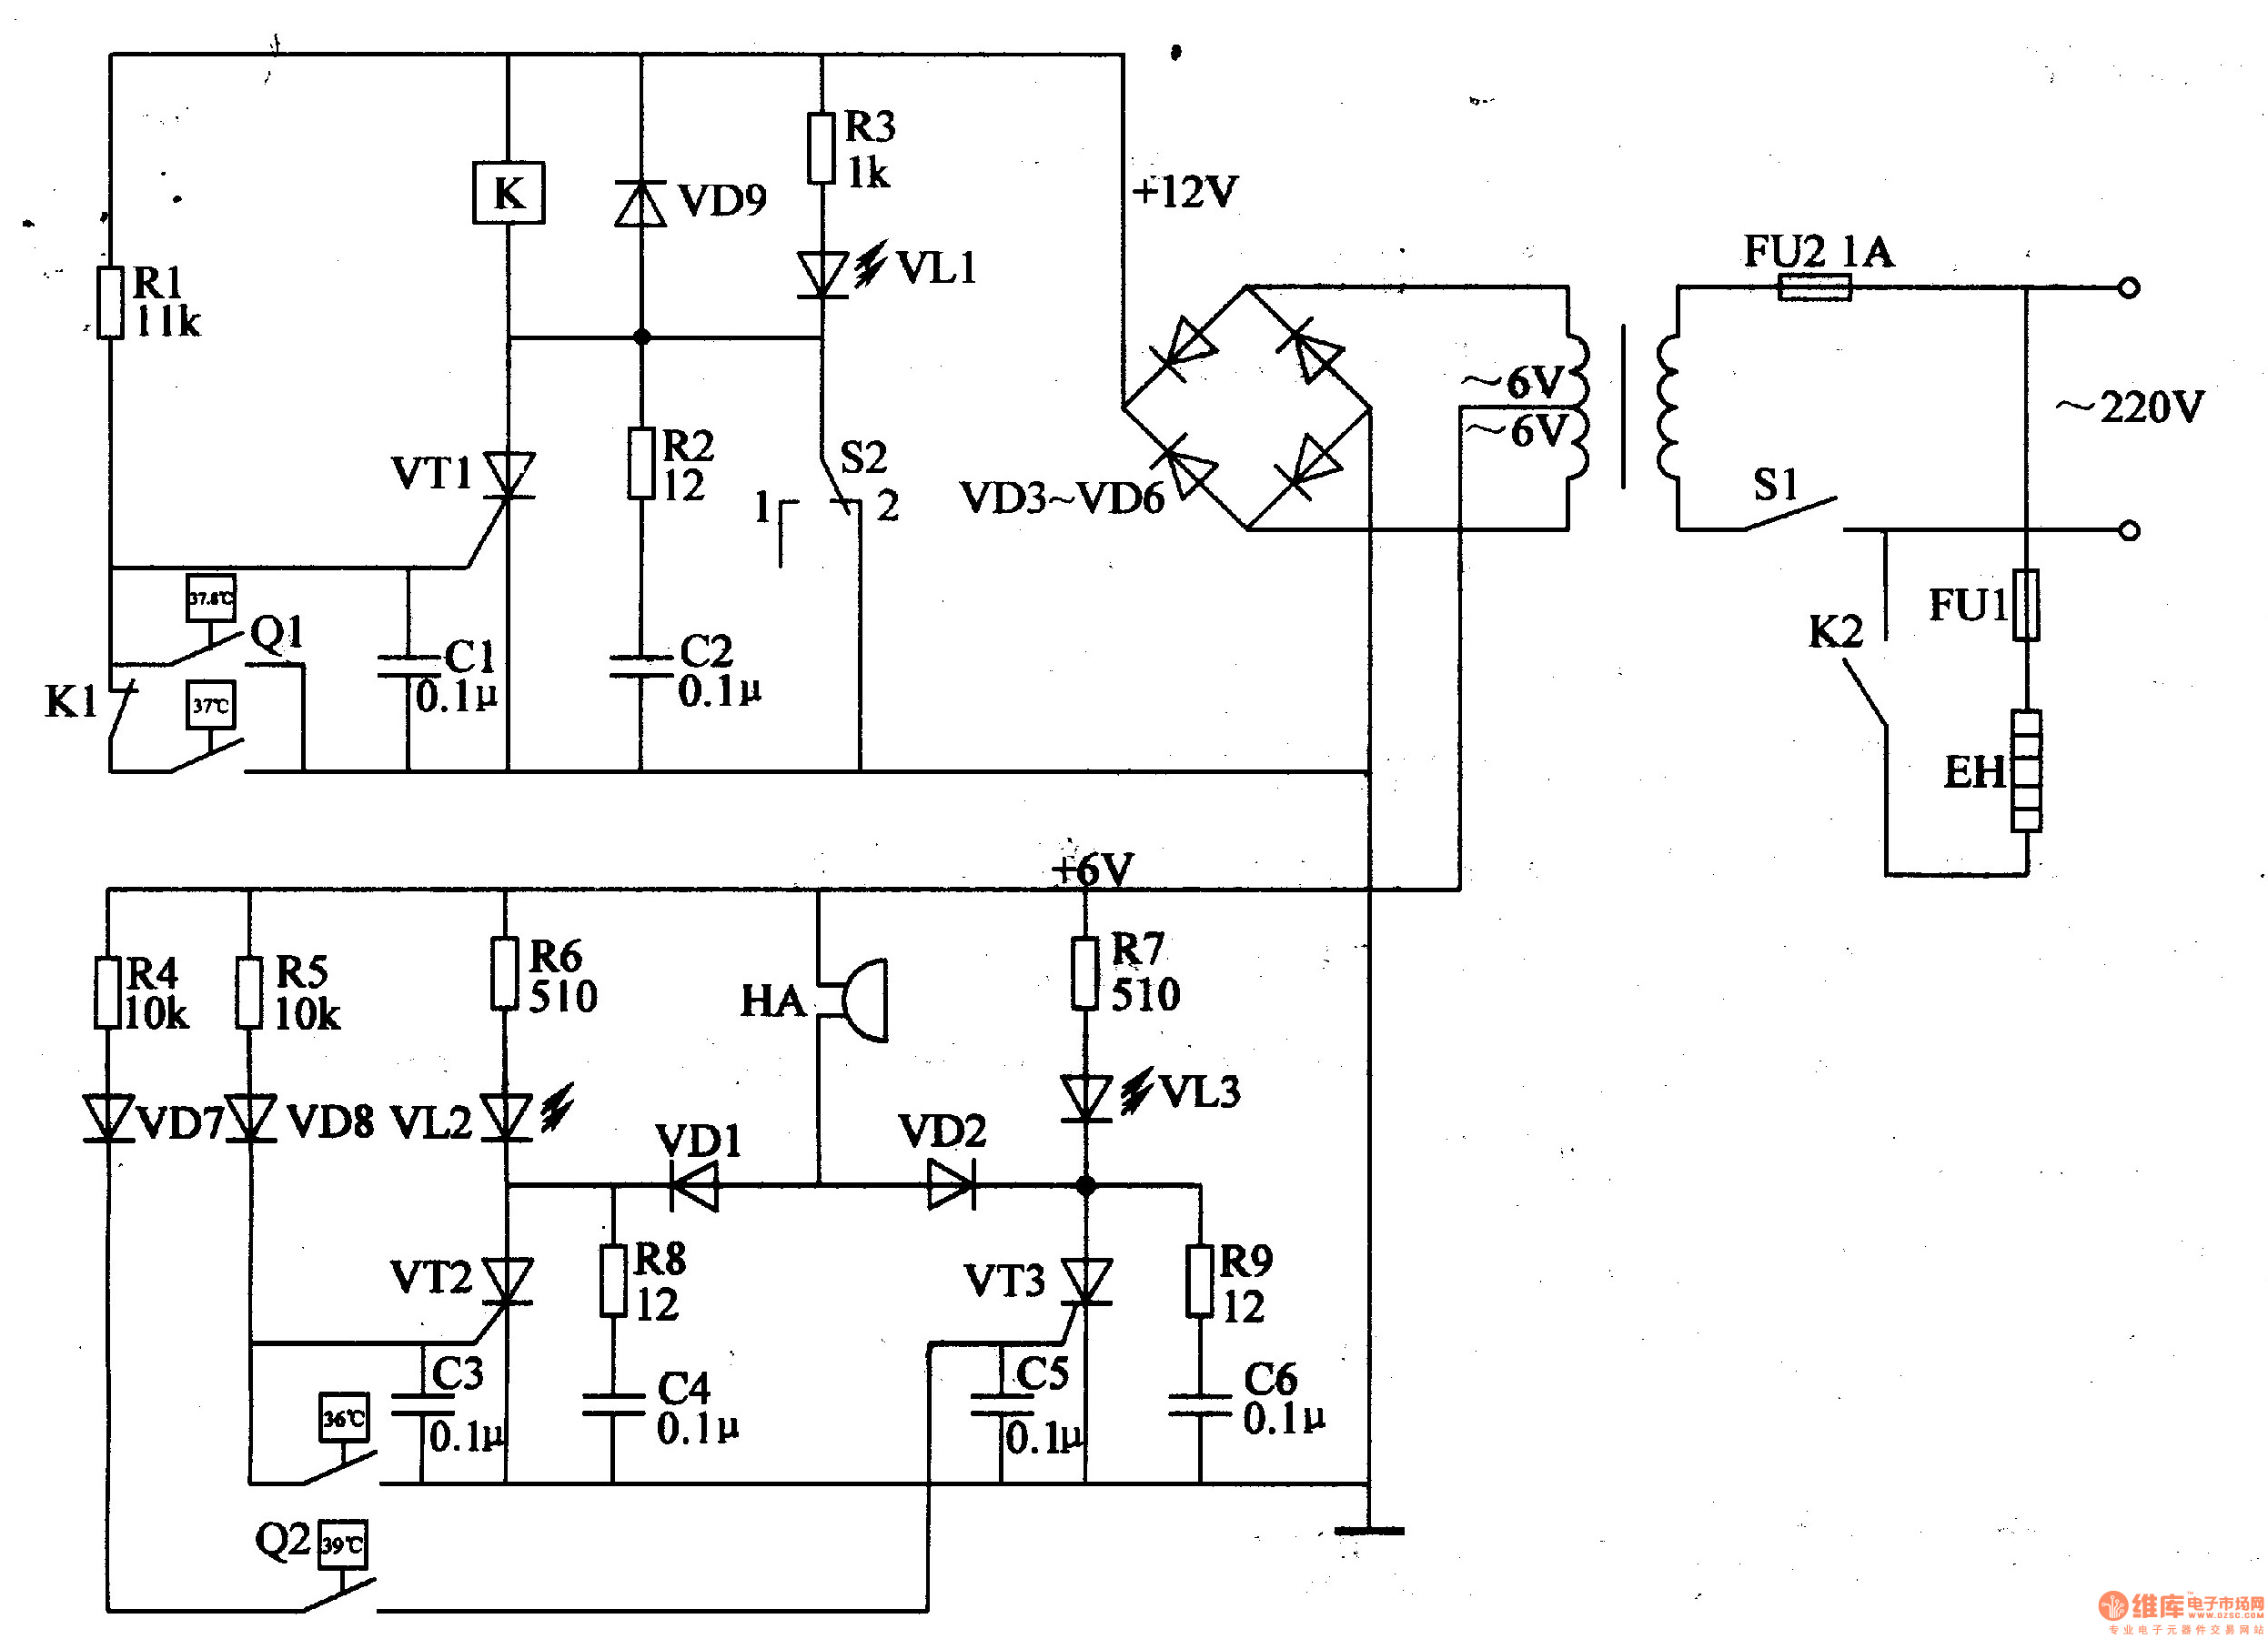 elap vd3 wiring diagram